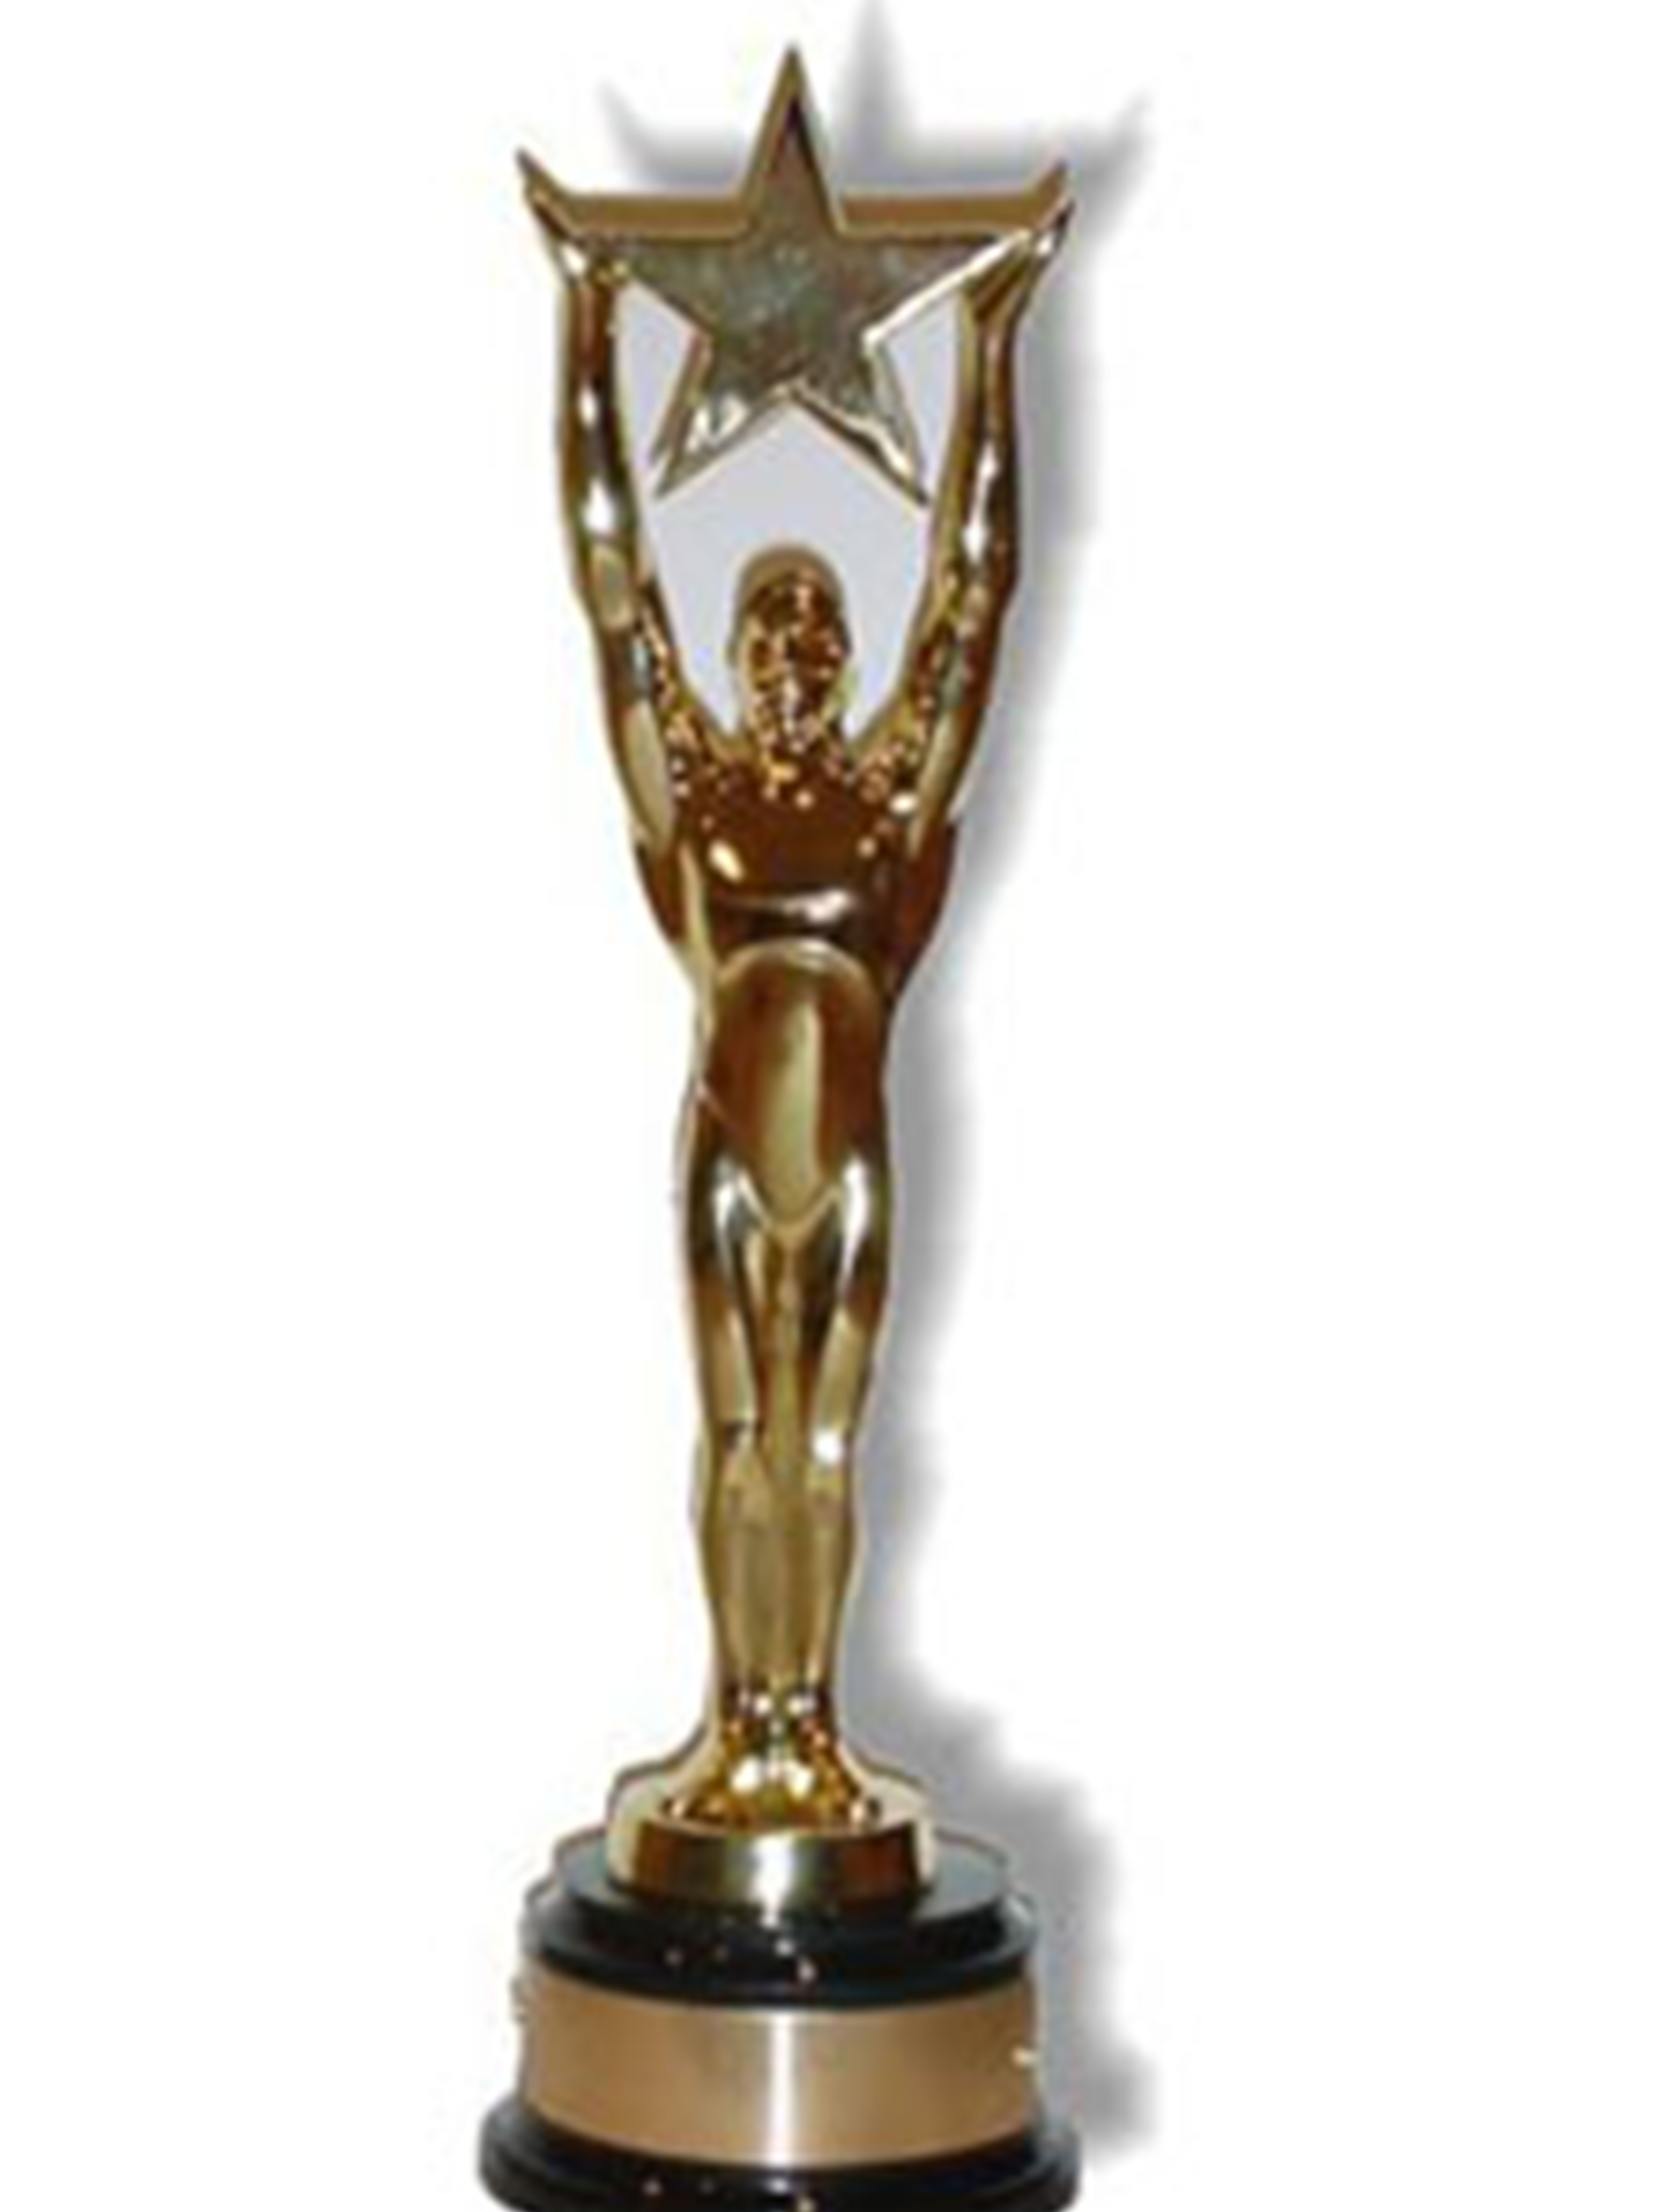 Star Award Cardboard Cutout